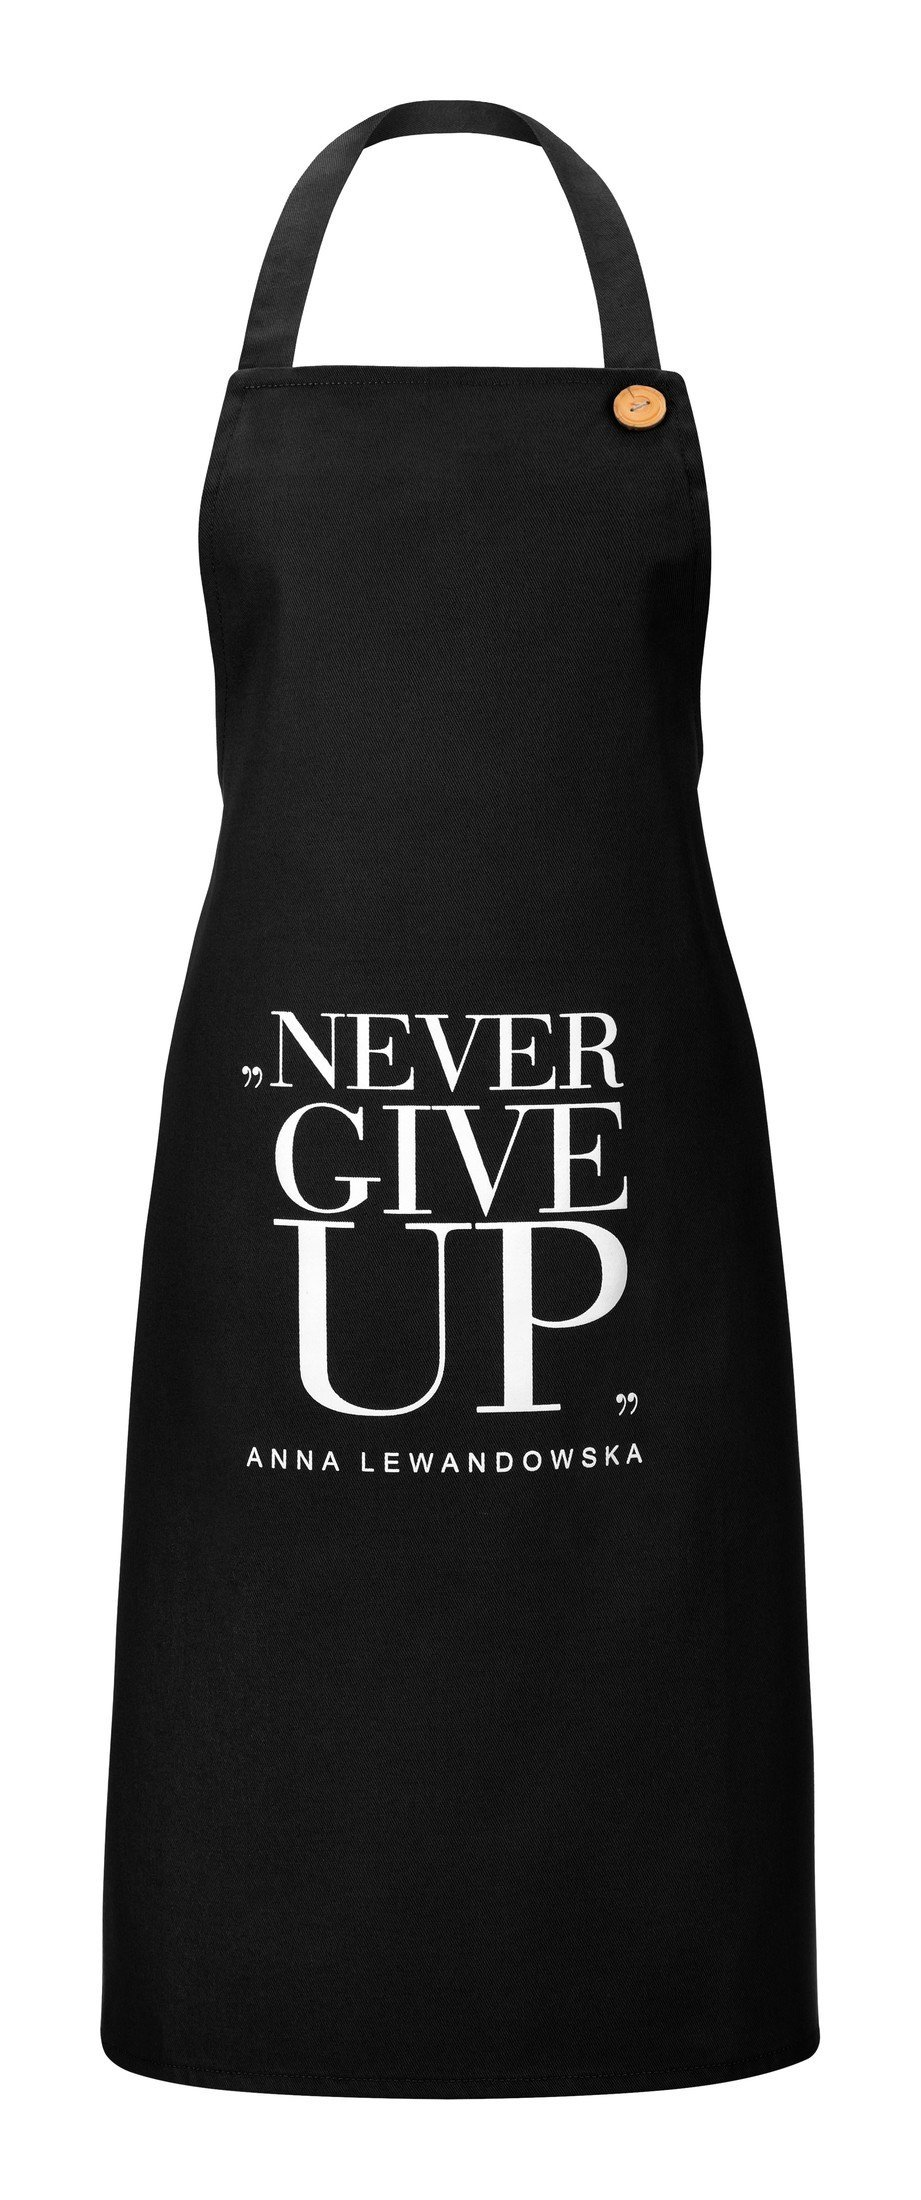 Fartuch kuchenny Anna Lewandowska Never Give Up czarny - 54984